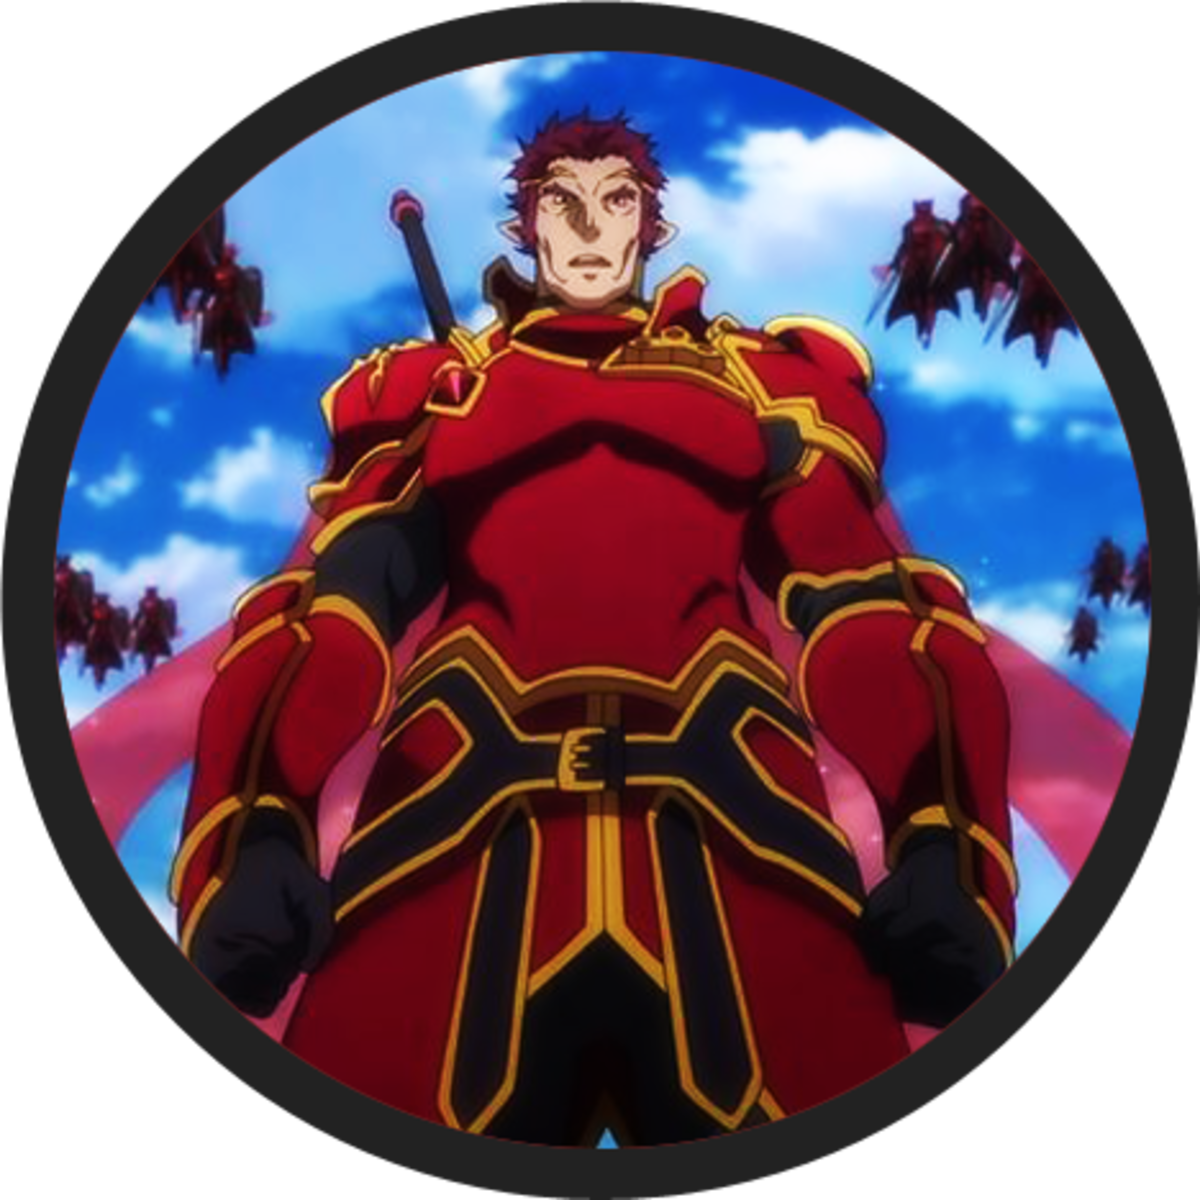 General Eugene ALO avatar